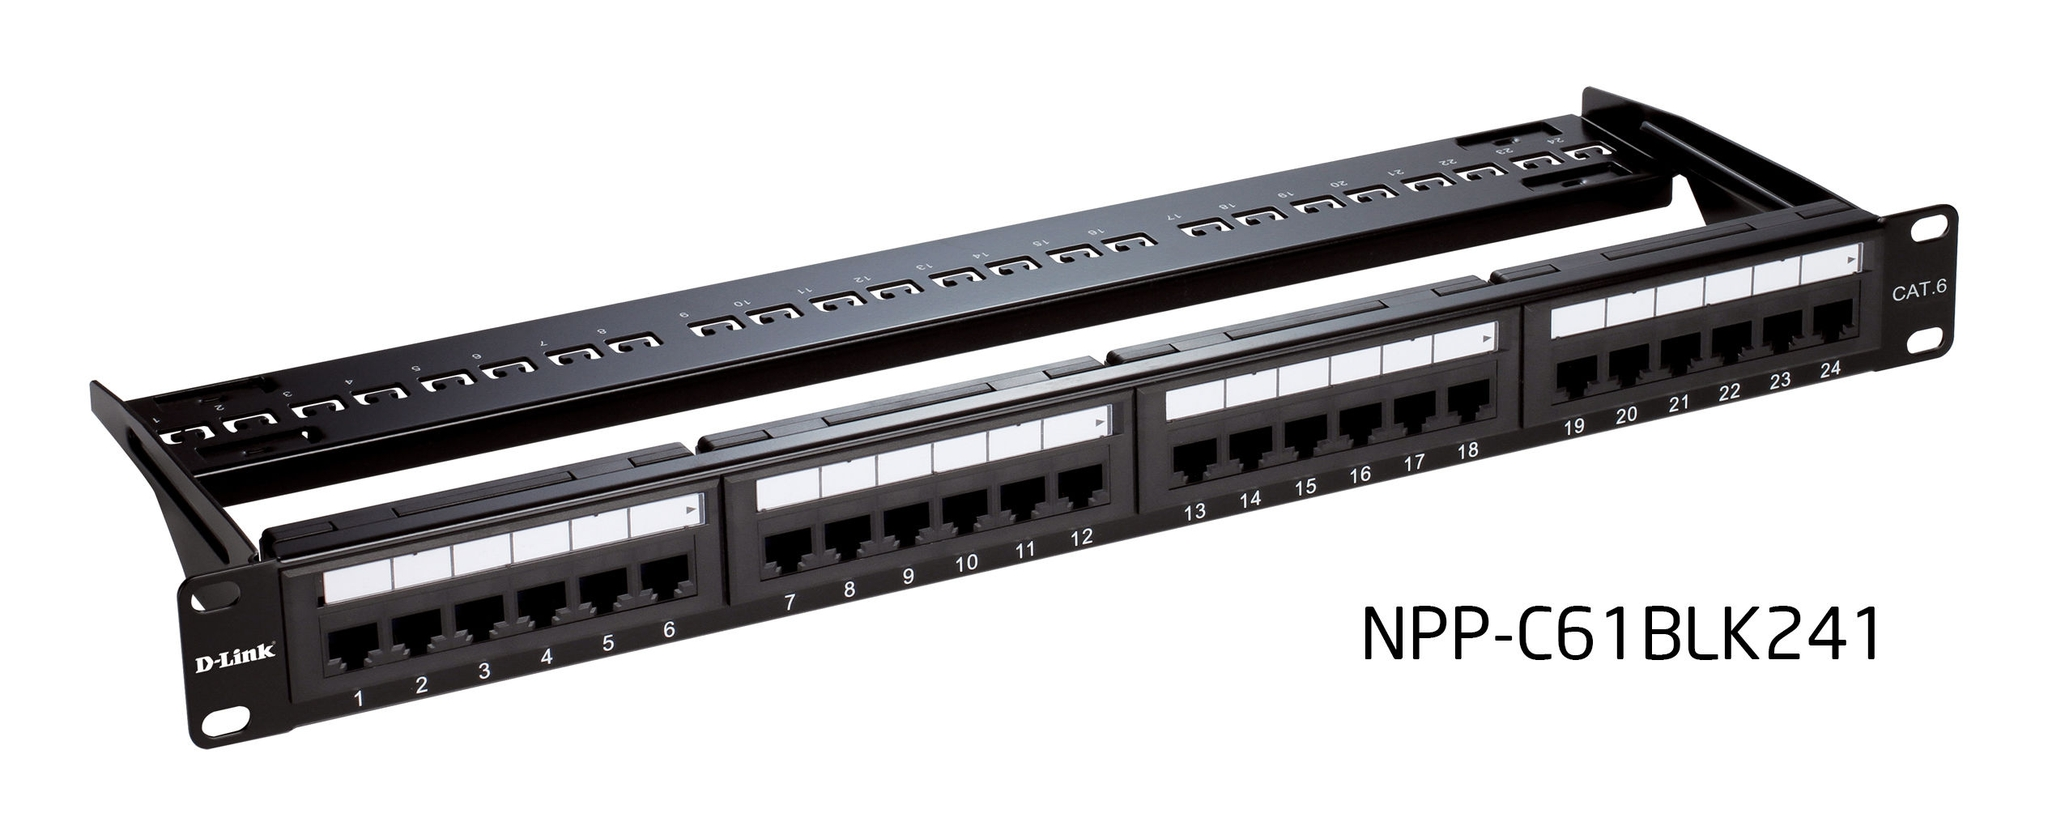 dlink npp-c61blk241 - 24 port patch panel - cat6